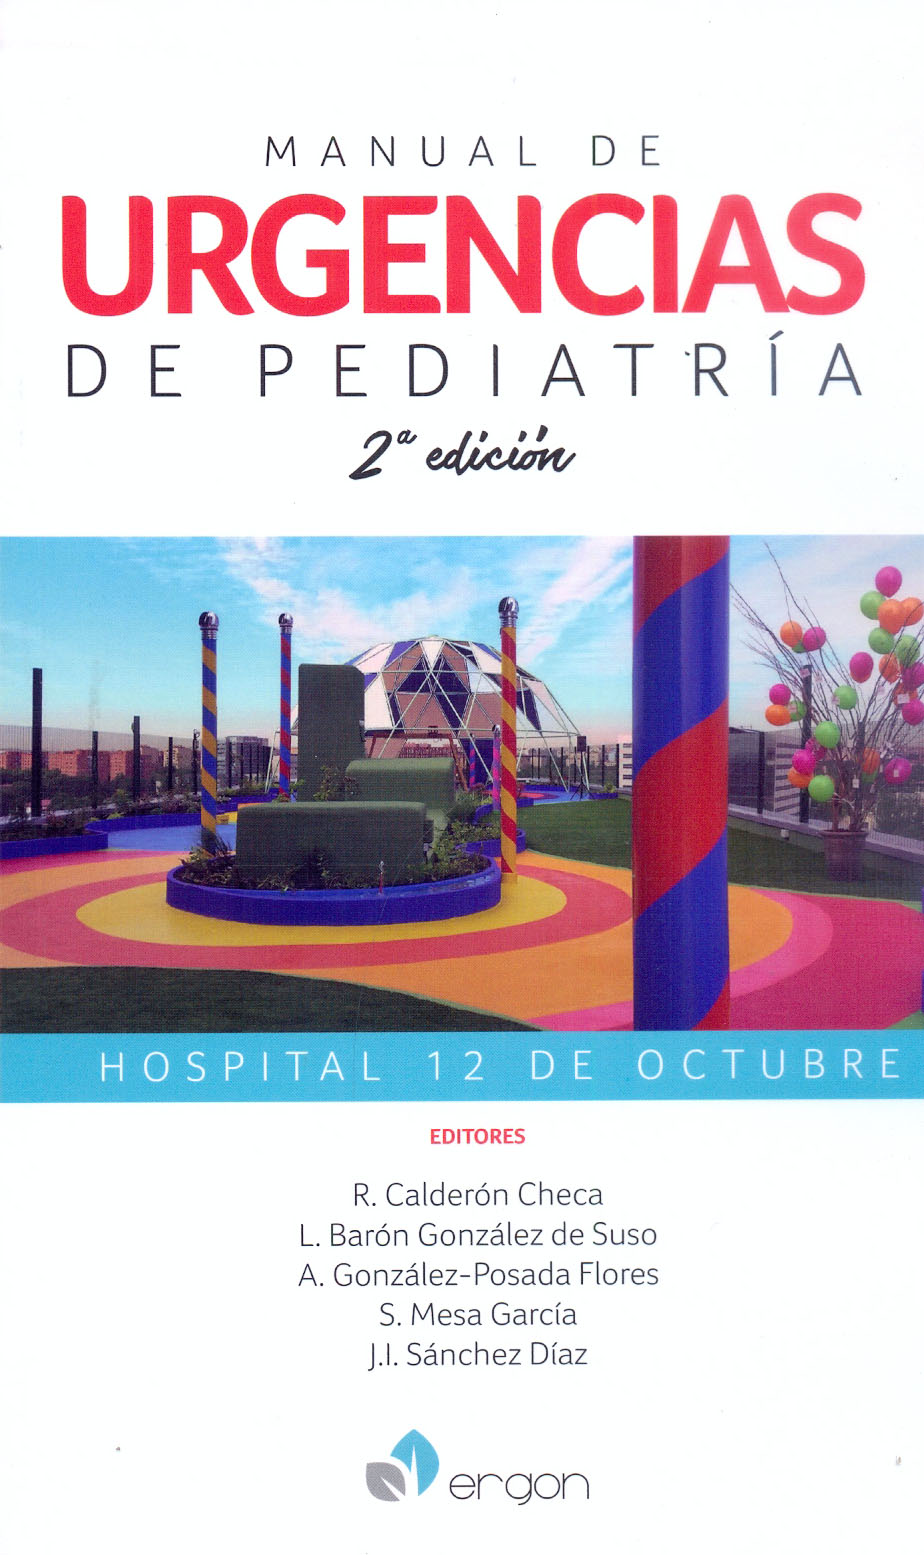 Manual de Urgencias Pediatría Hospital 12 de Octubre